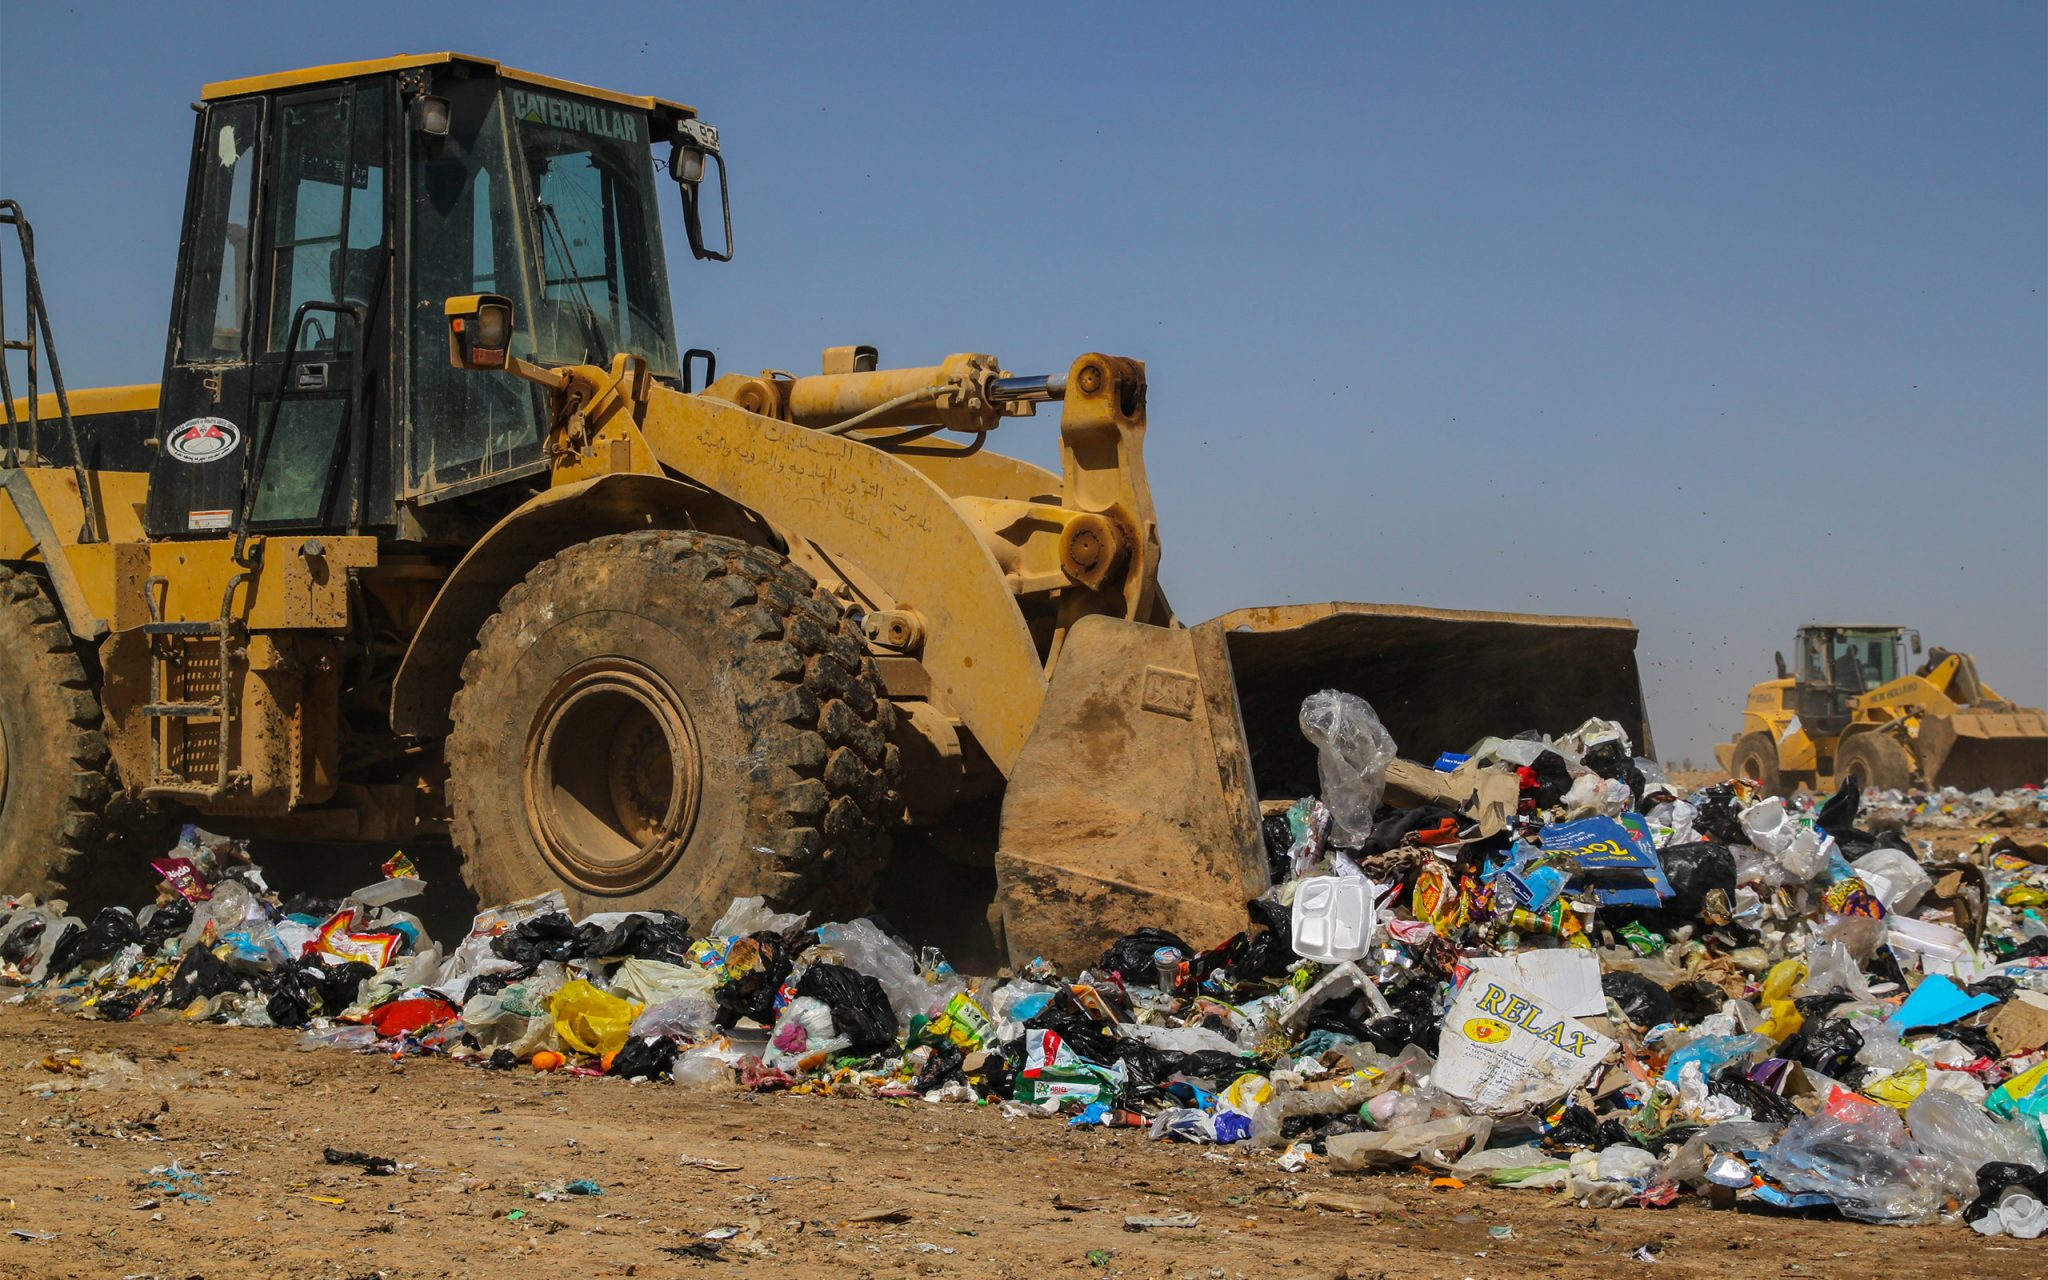 Al Huseyniyat landfill site: the bulldozers 'hammer along' at the speed of knots, while the refugees have to dance between them to avoid being crushed